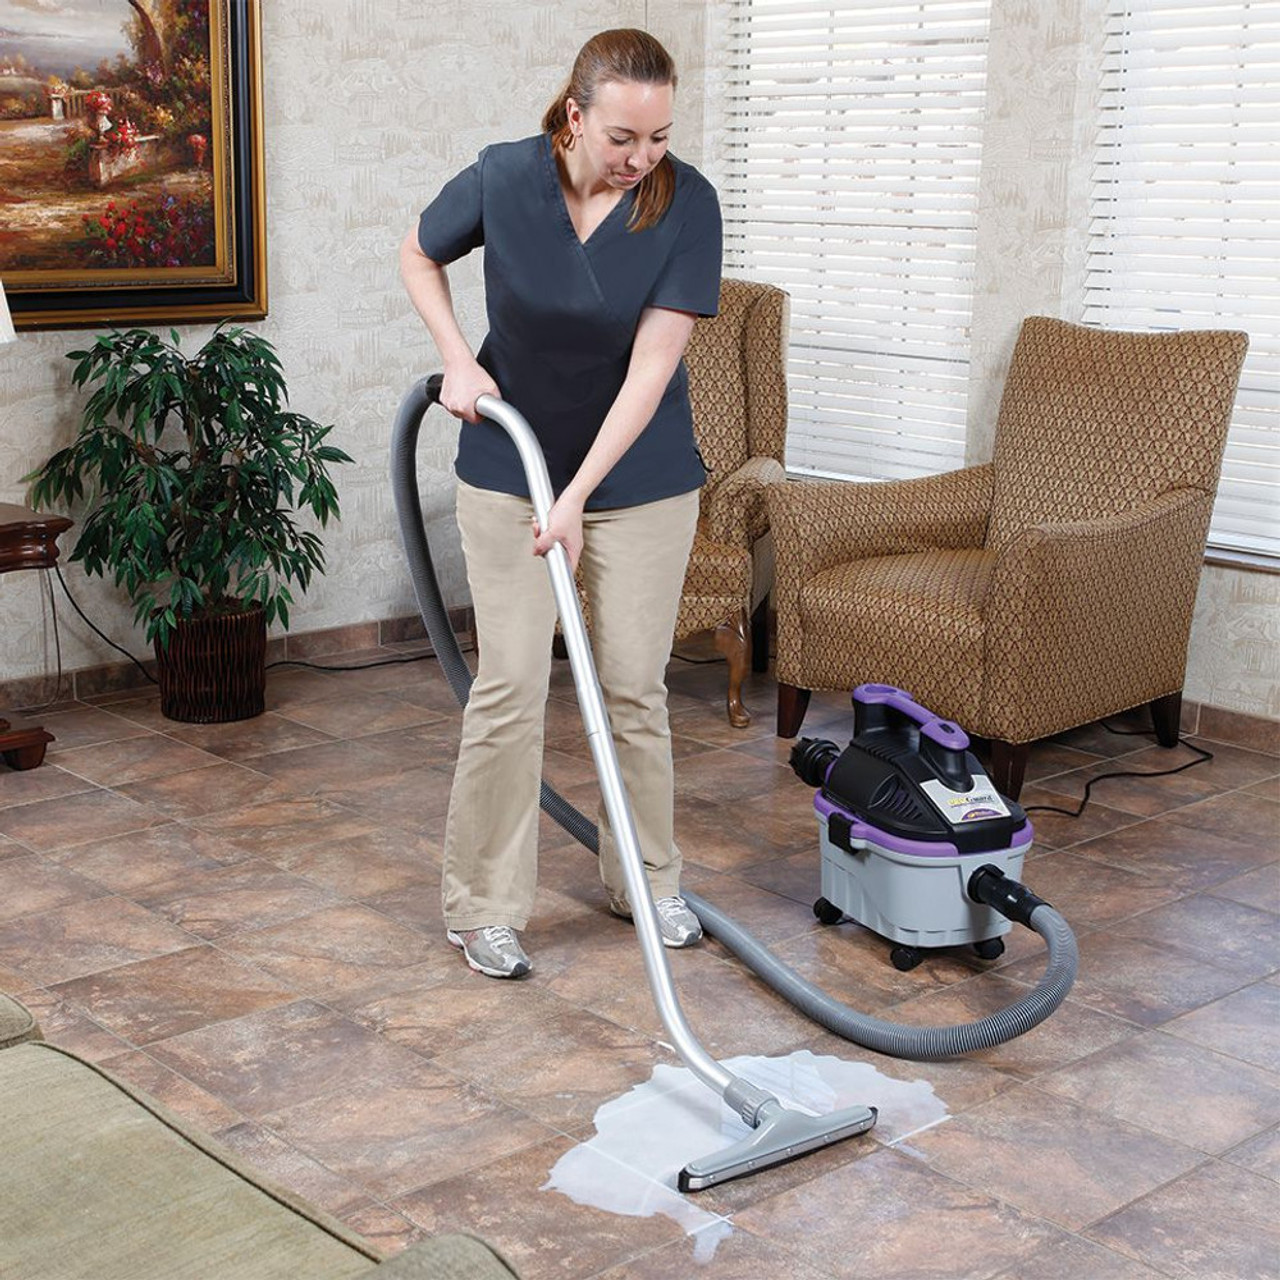 The ProGuard hard floor tool makes quick work of cleaning hard floors such as tile, wood and concrete.